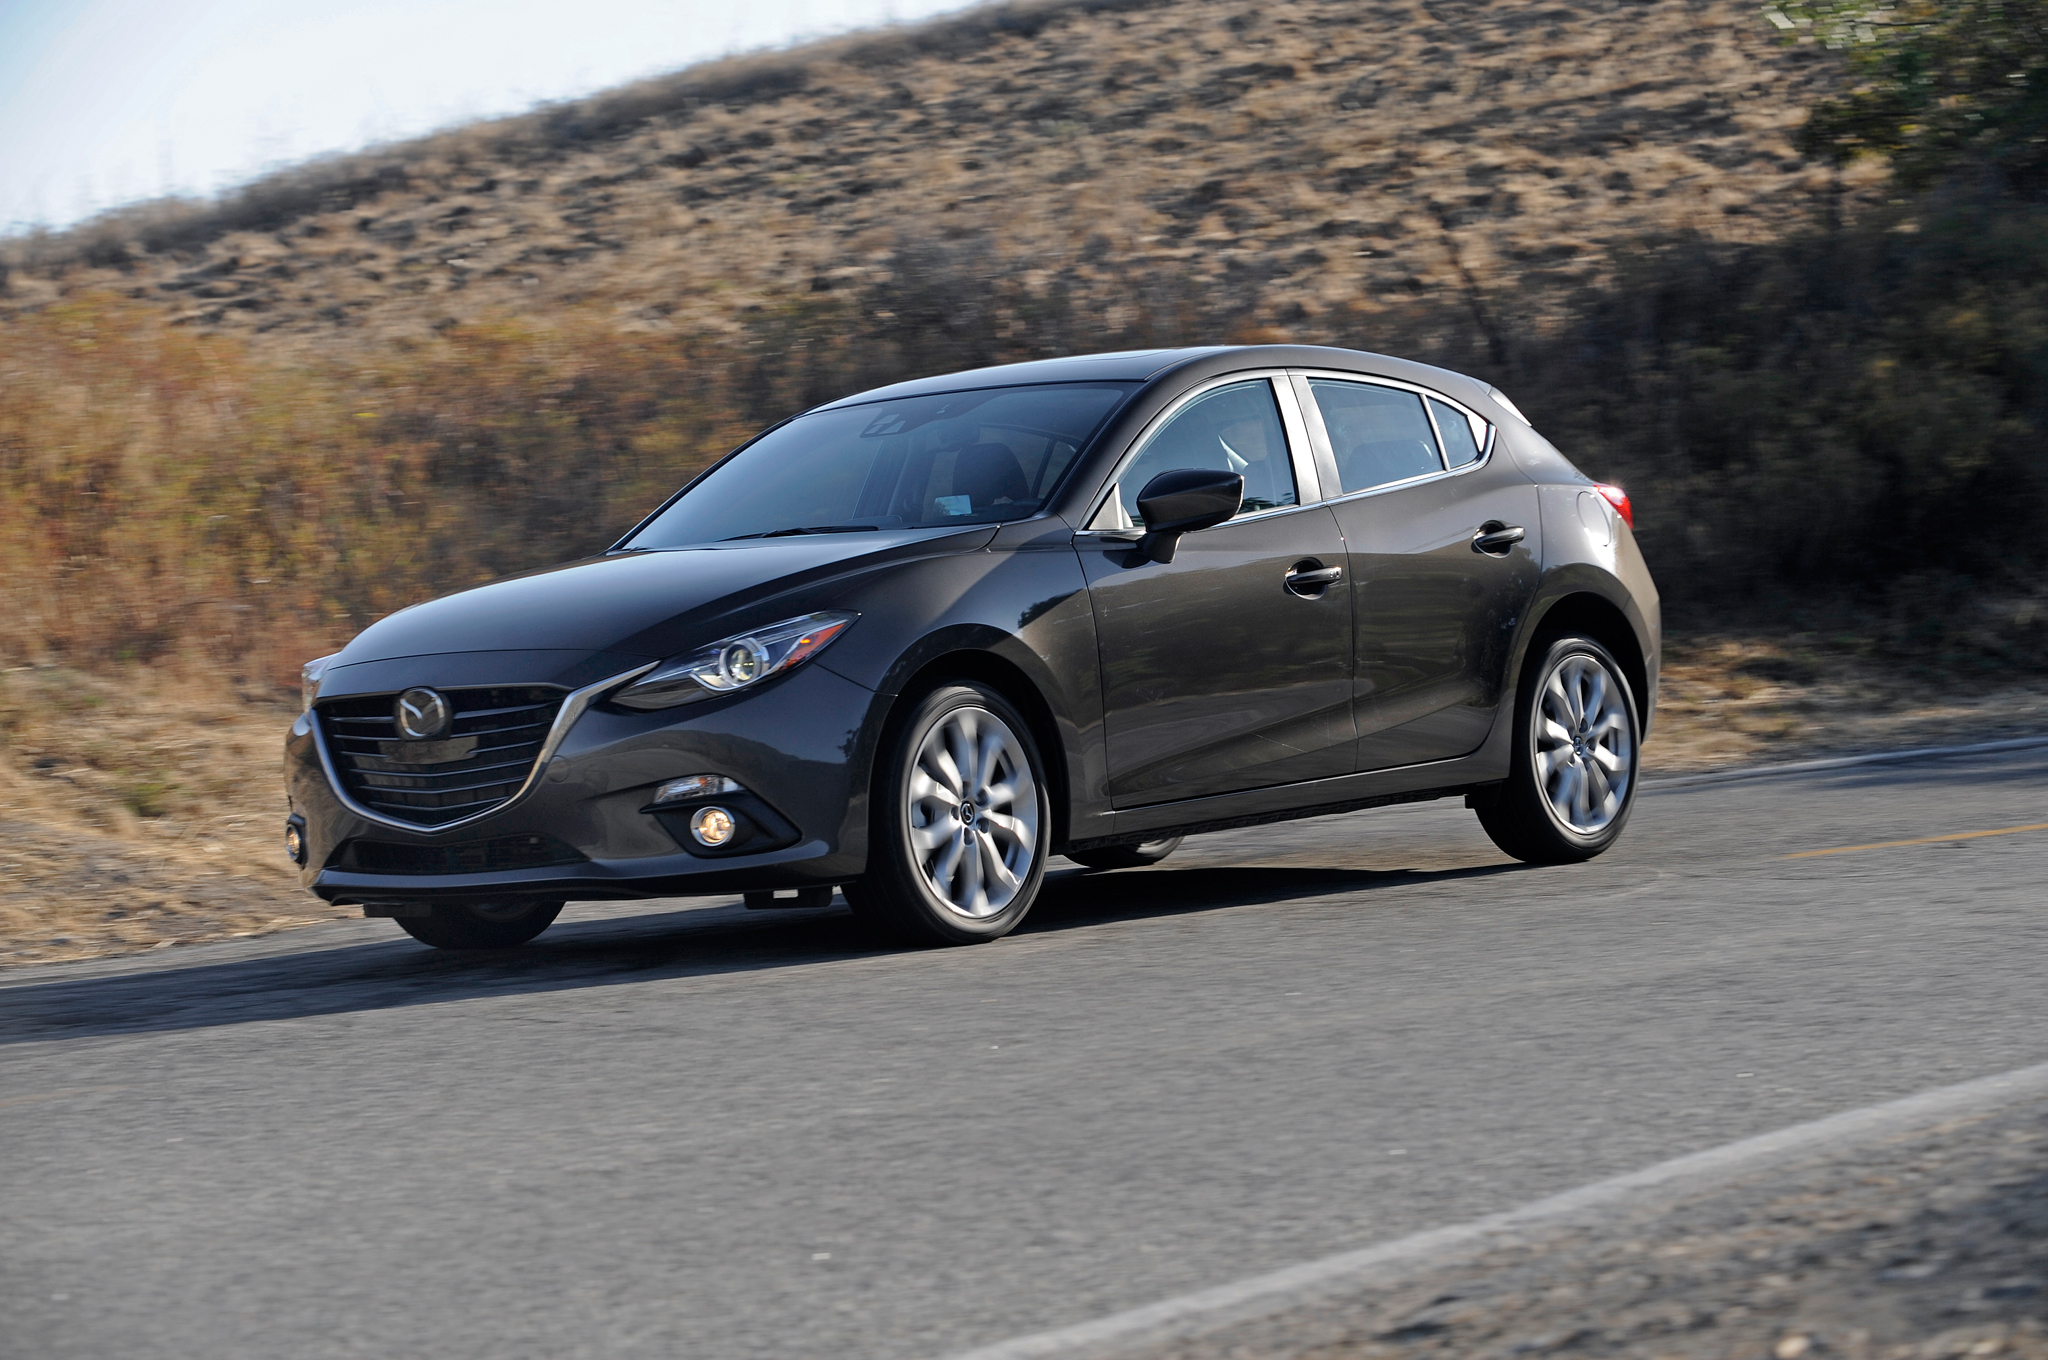 Mazda3 Output From Mexico To Facilitate Higher Sales in 2014